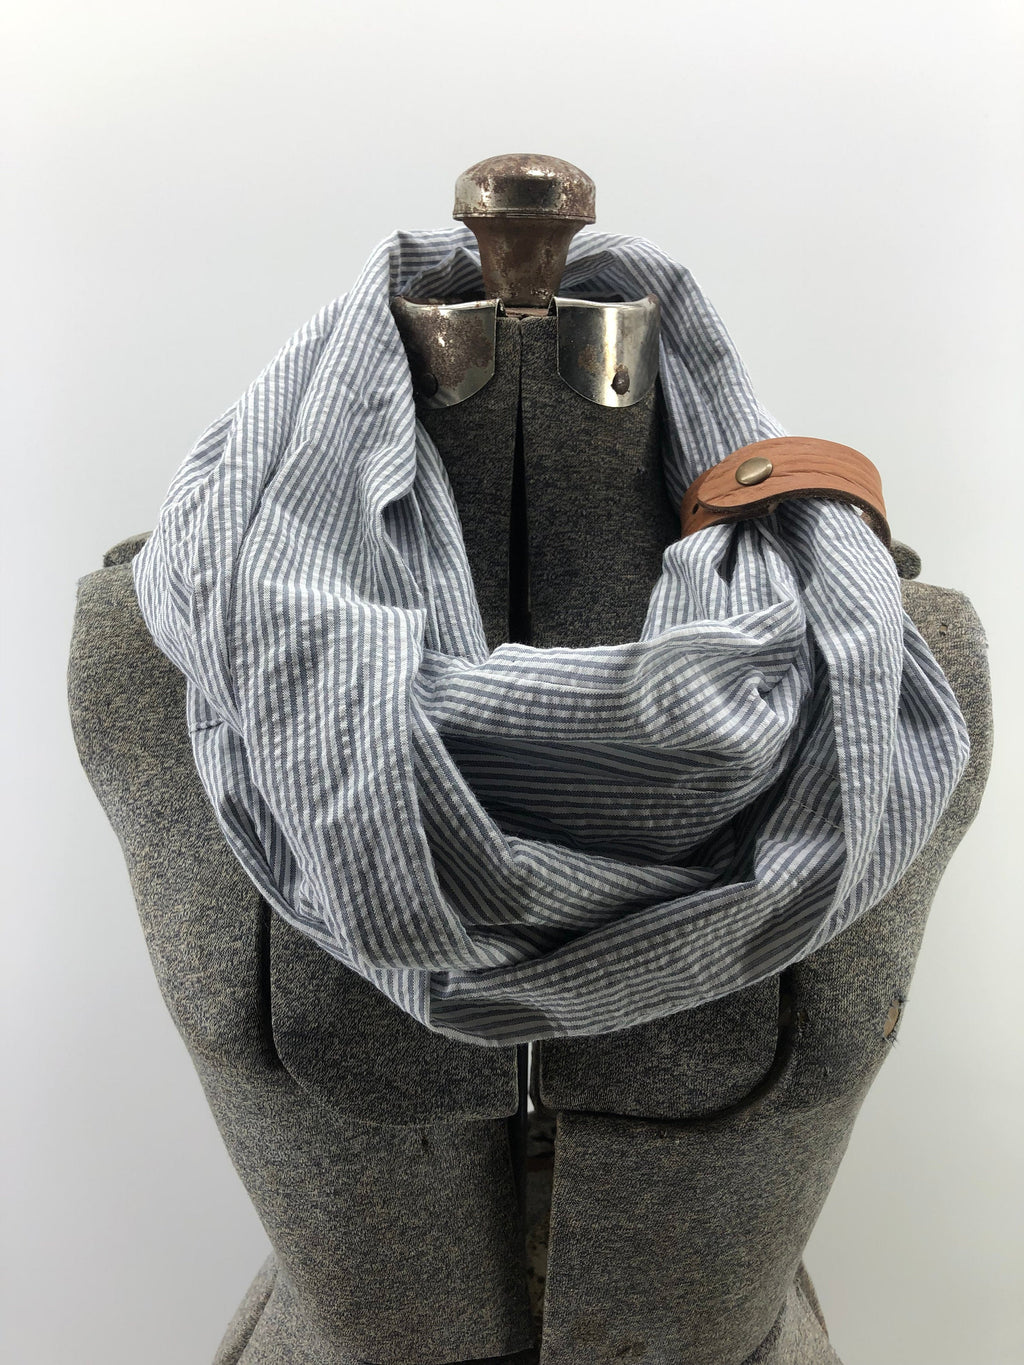 Gray & White Seersucker Eternity Scarf with a Leather Cuff